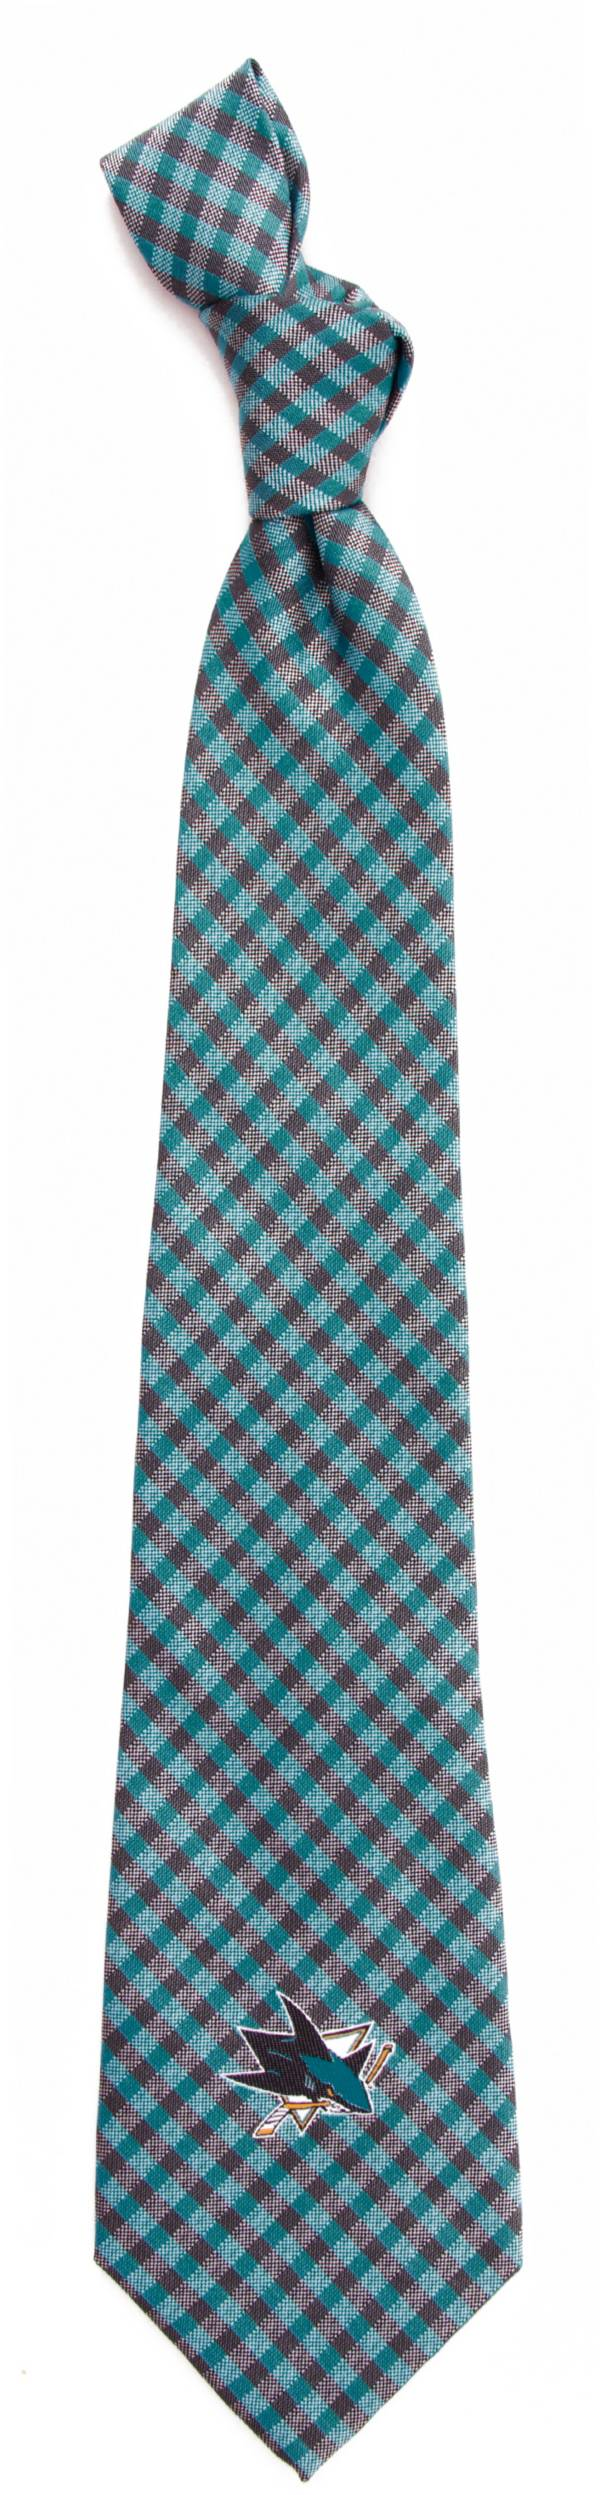 Eagles Wings San Jose Sharks Gingham Necktie product image